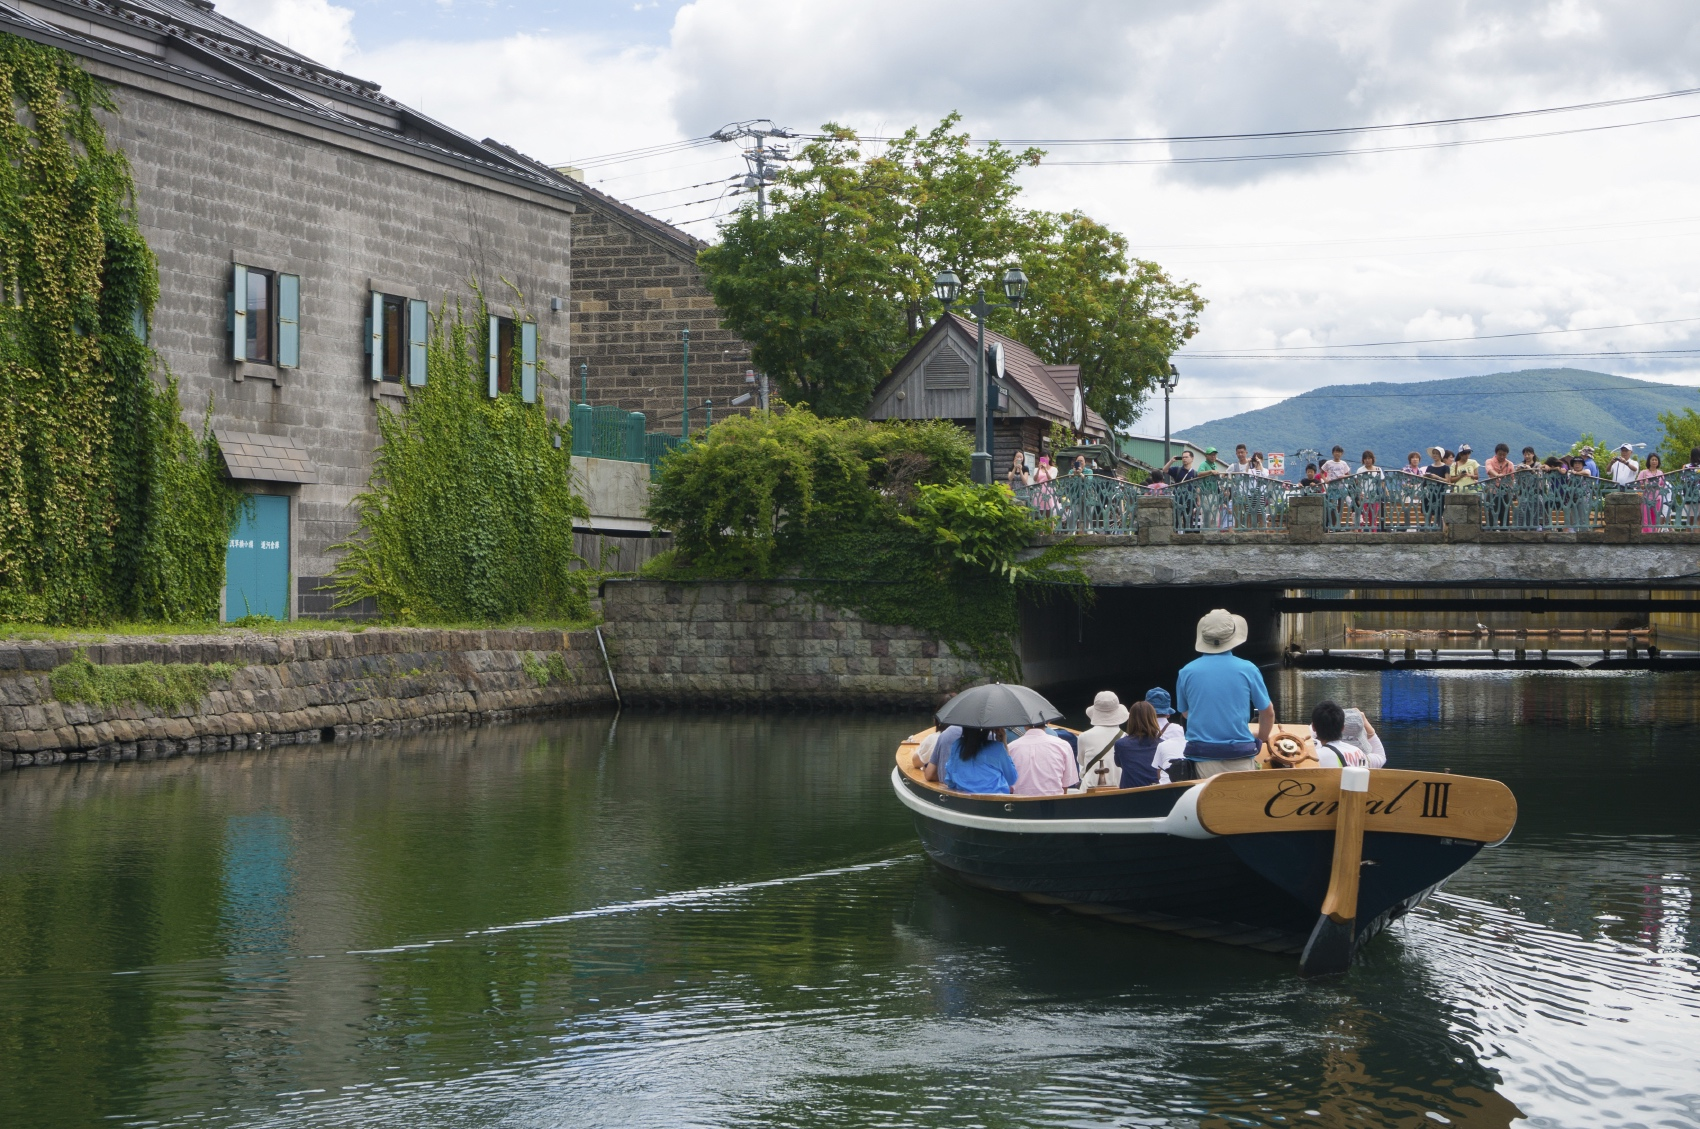 Canal boat cruise on Otaru Canal, Otaru, Japan.